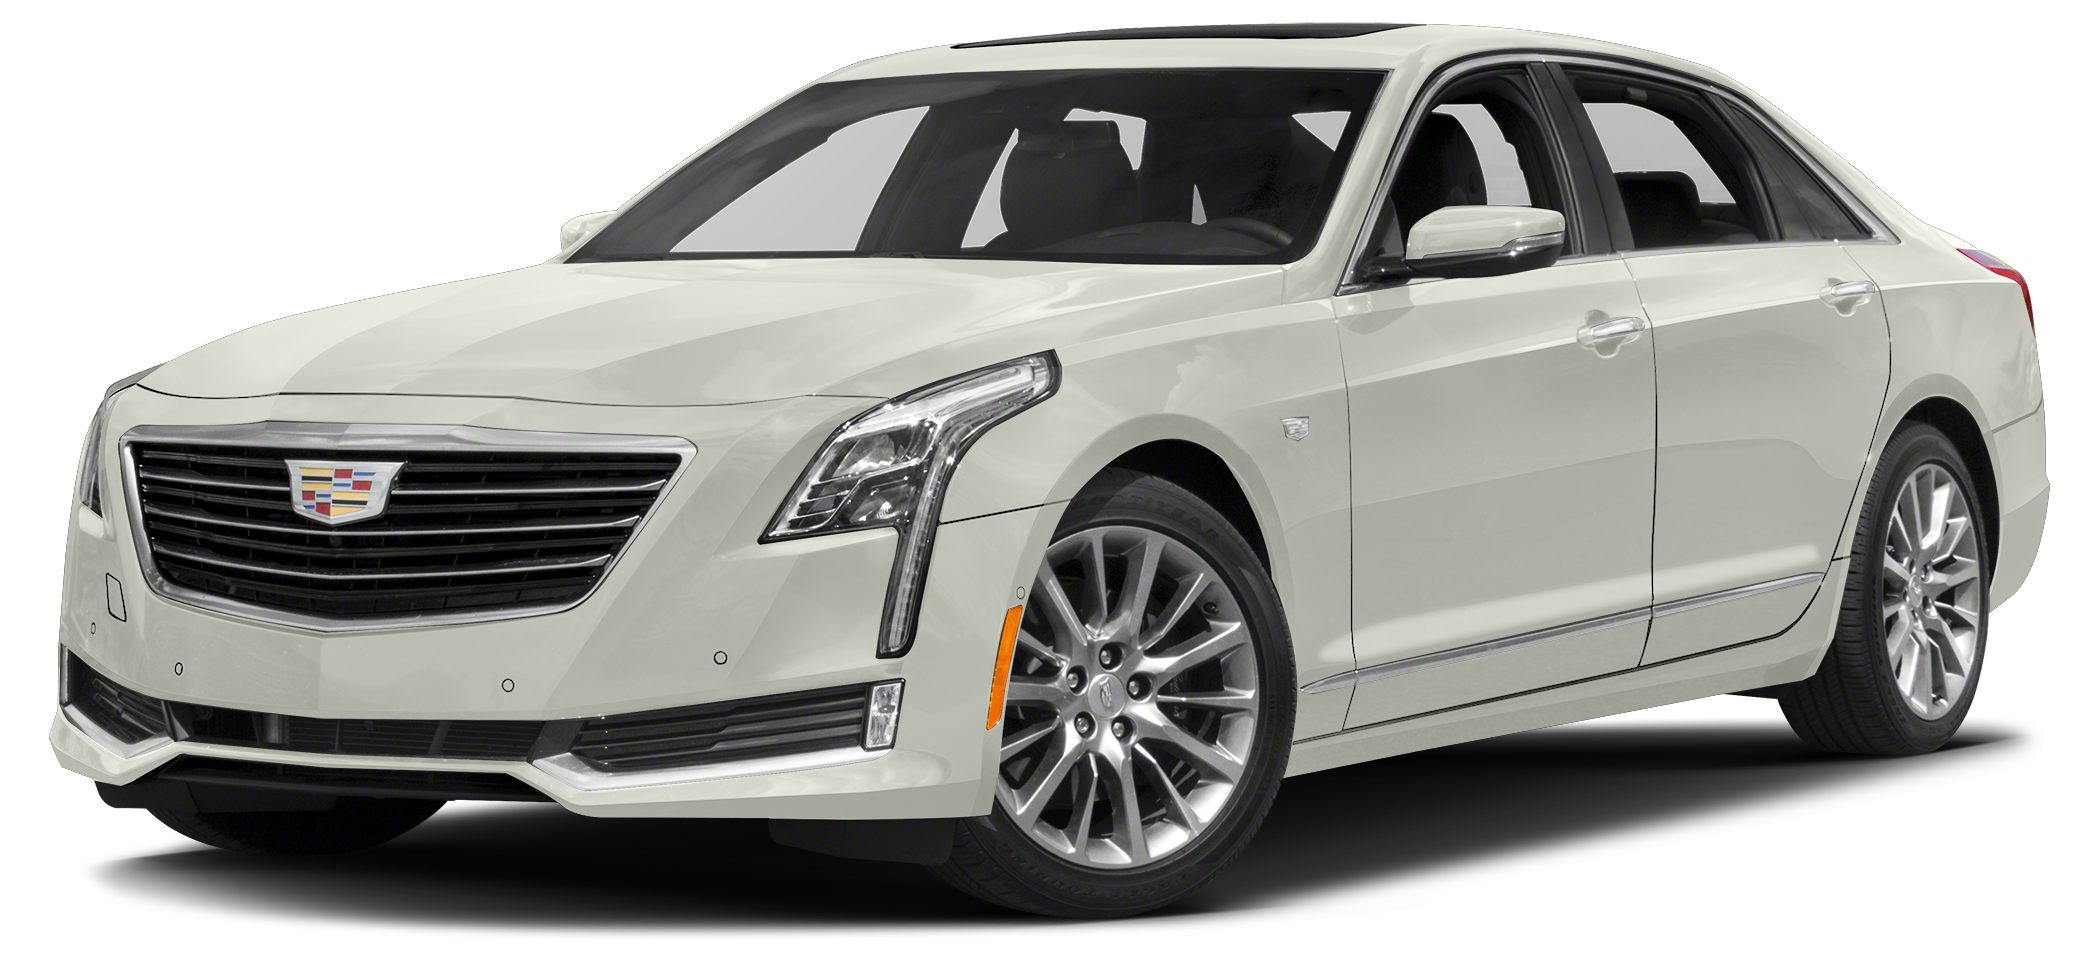 2018 Cadillac CT6 36 Premium Luxury Finance Offers based on MSRP2018 Cadillac CT6 Premium Luxury